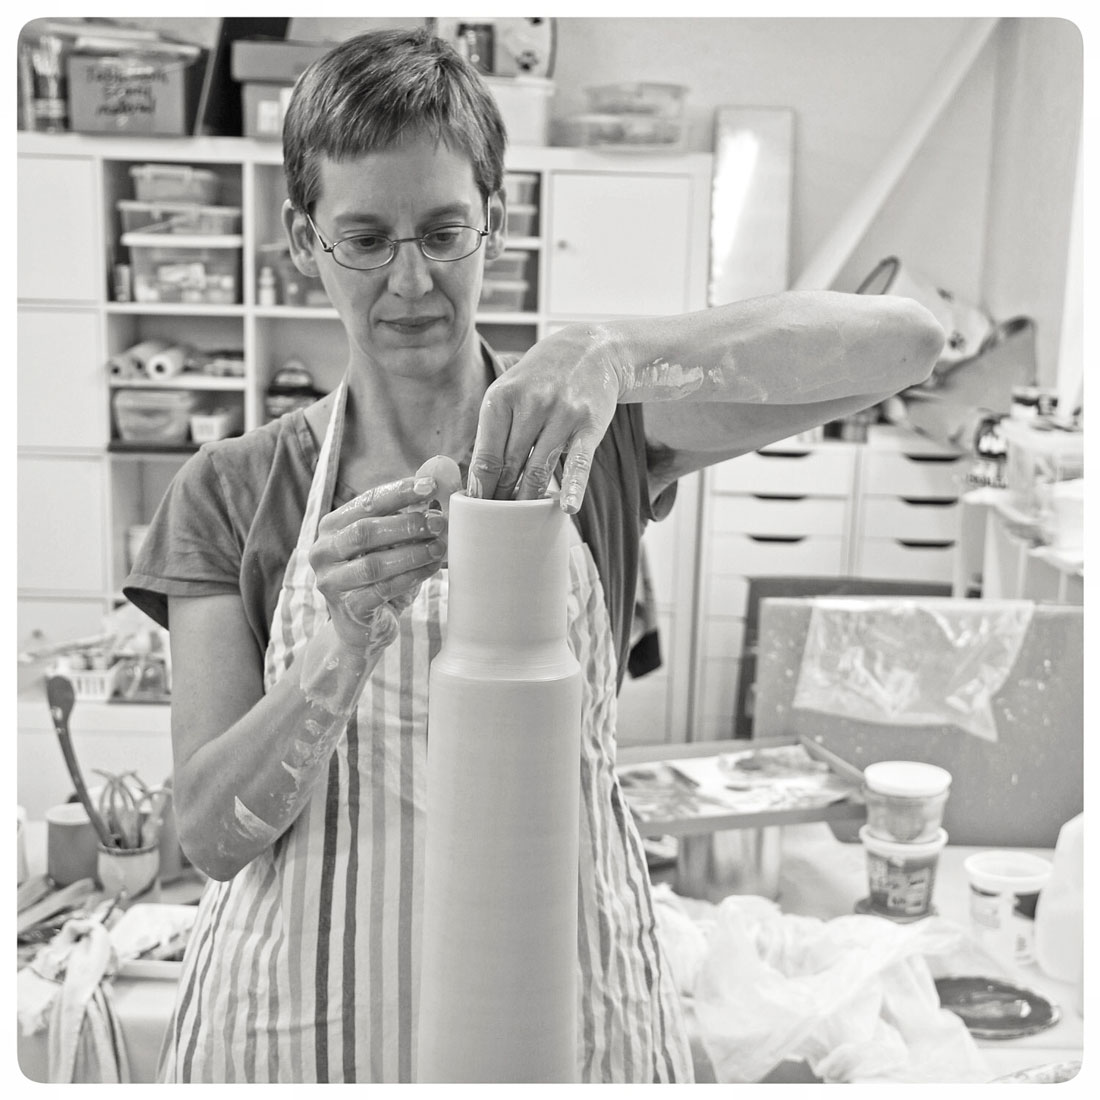 Samantha-Henneke-working-on-a-tall-vase-at-the-potters-wheel.jpg